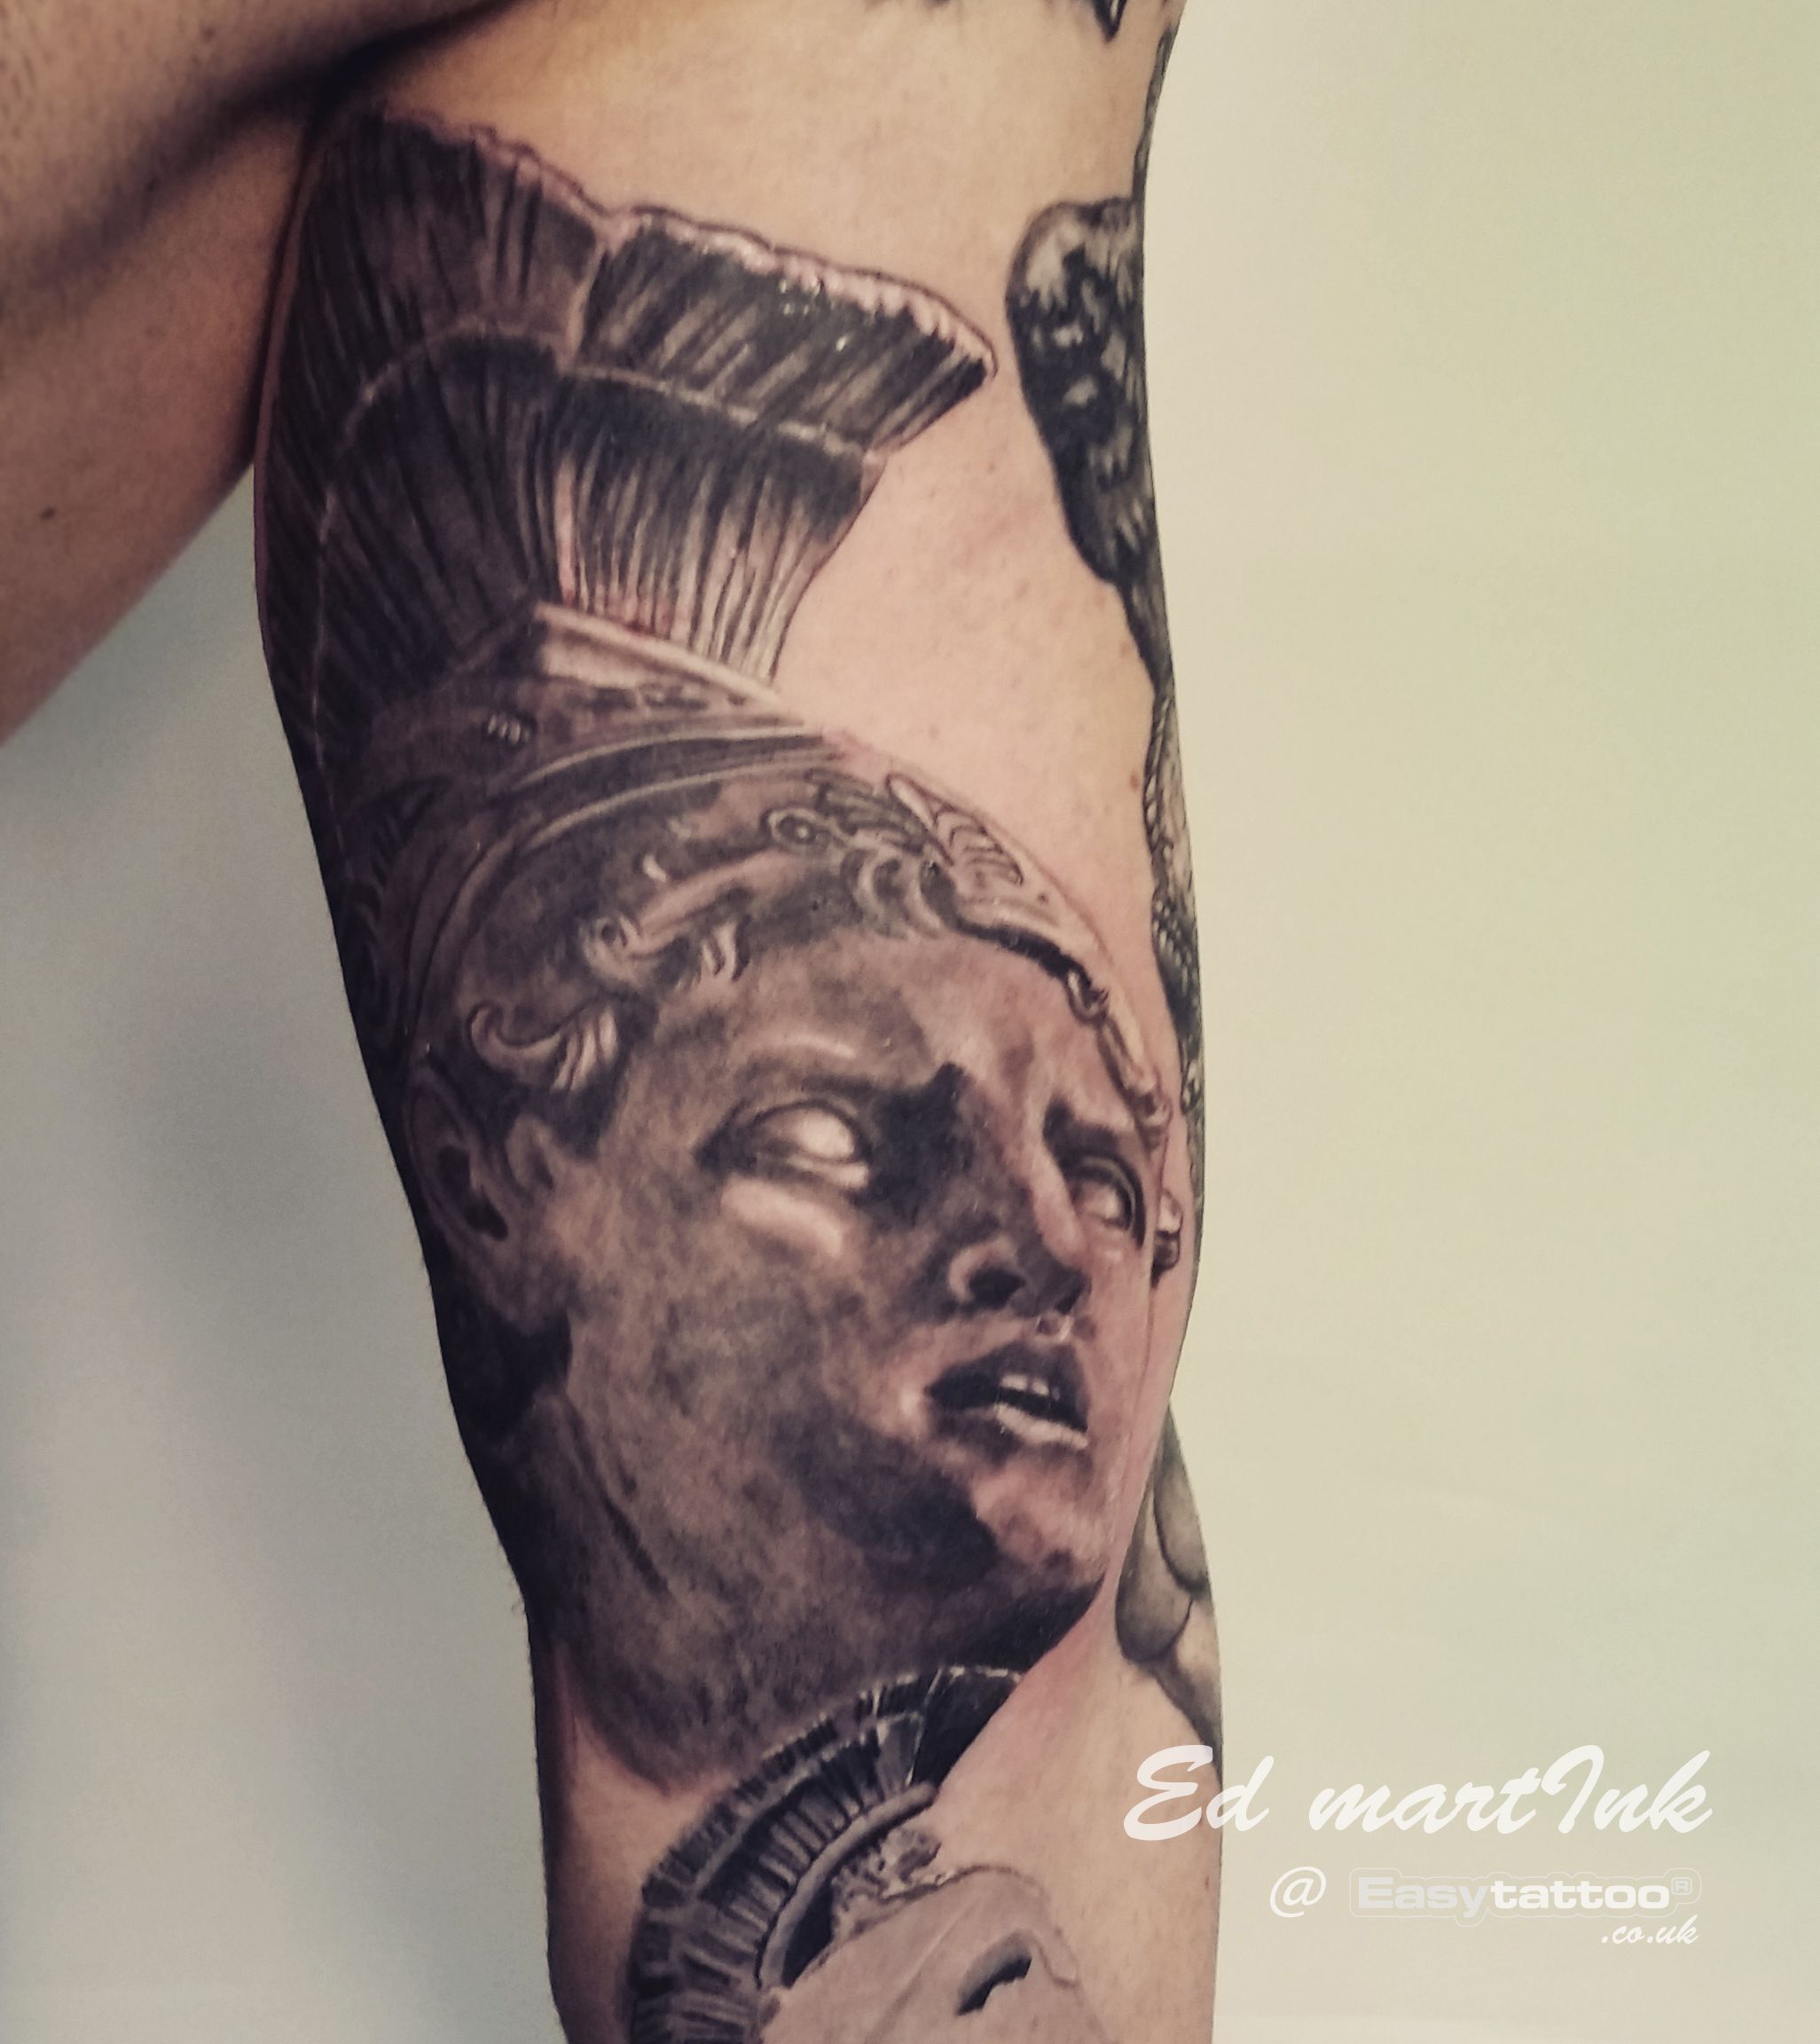 Ed Martink Tattoo Artist In London At Easytattoo Co Uk Tattoos Tattoo Artists Portrait Tattoo